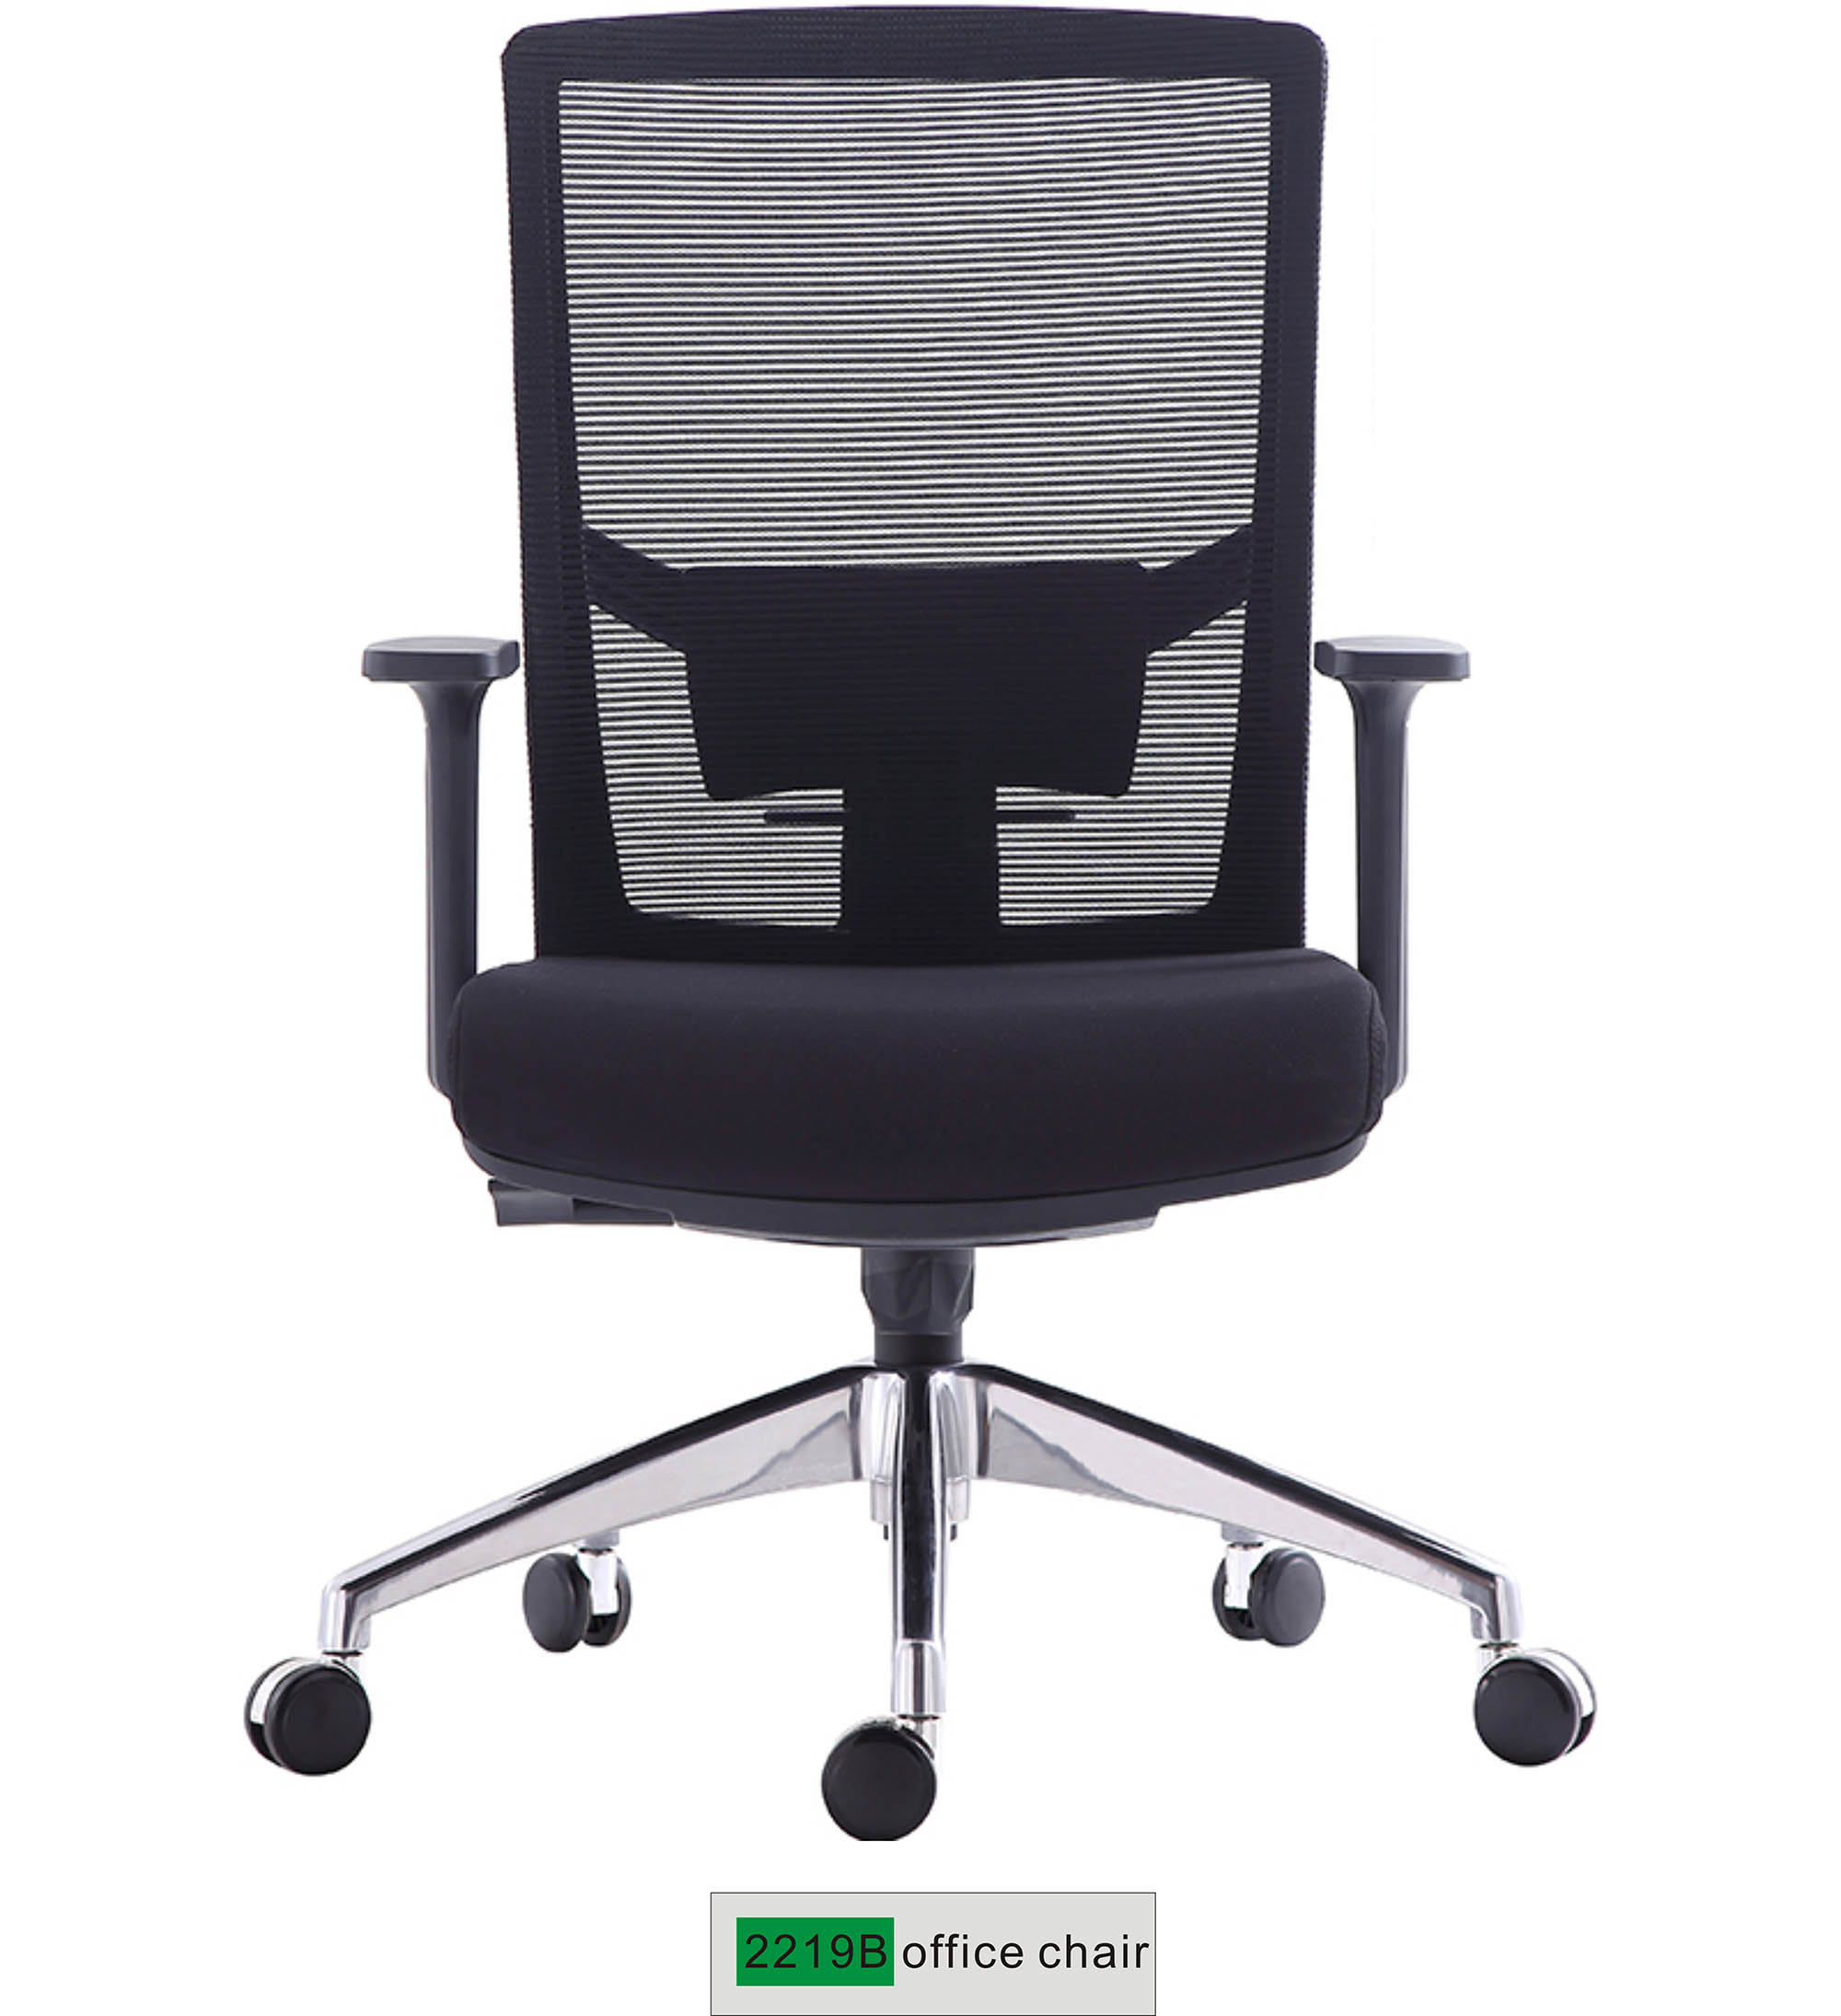 Ergonomic Office Chair with Lumbar Support 2219B